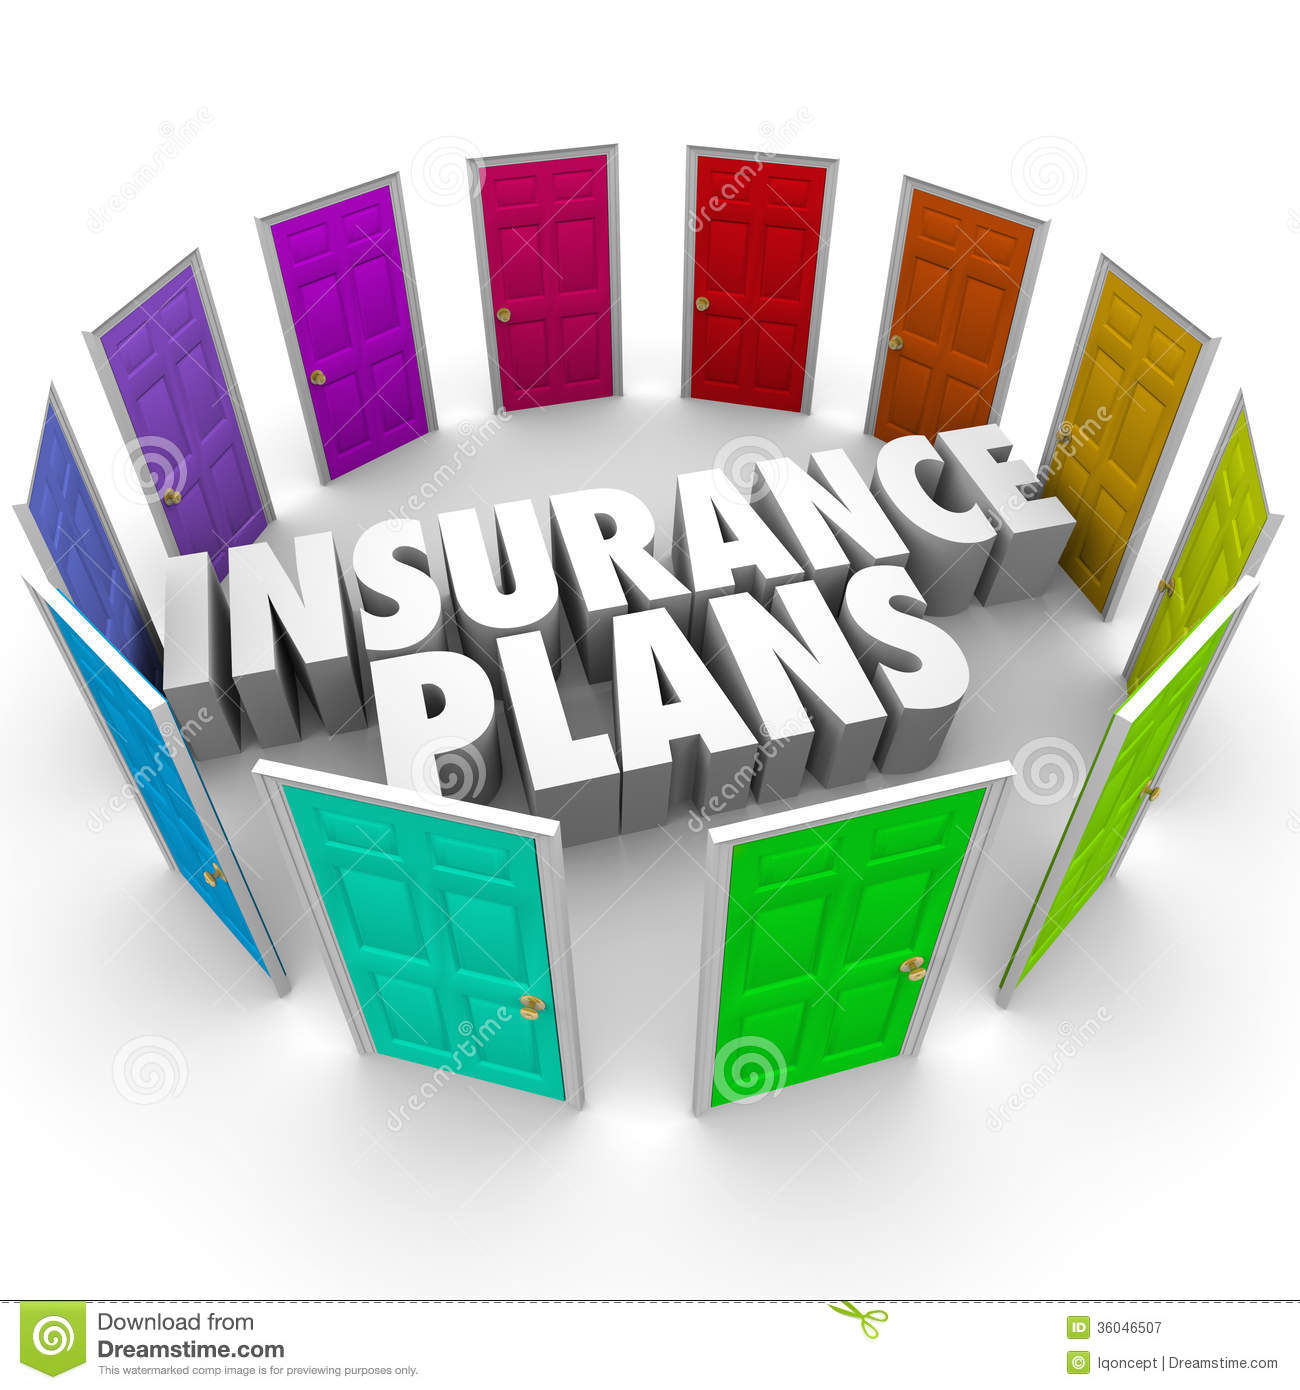 Insurance Plans Many Options Health Care-Insurance Plans Many Options Health Care Choices Doors Royalty Free-6